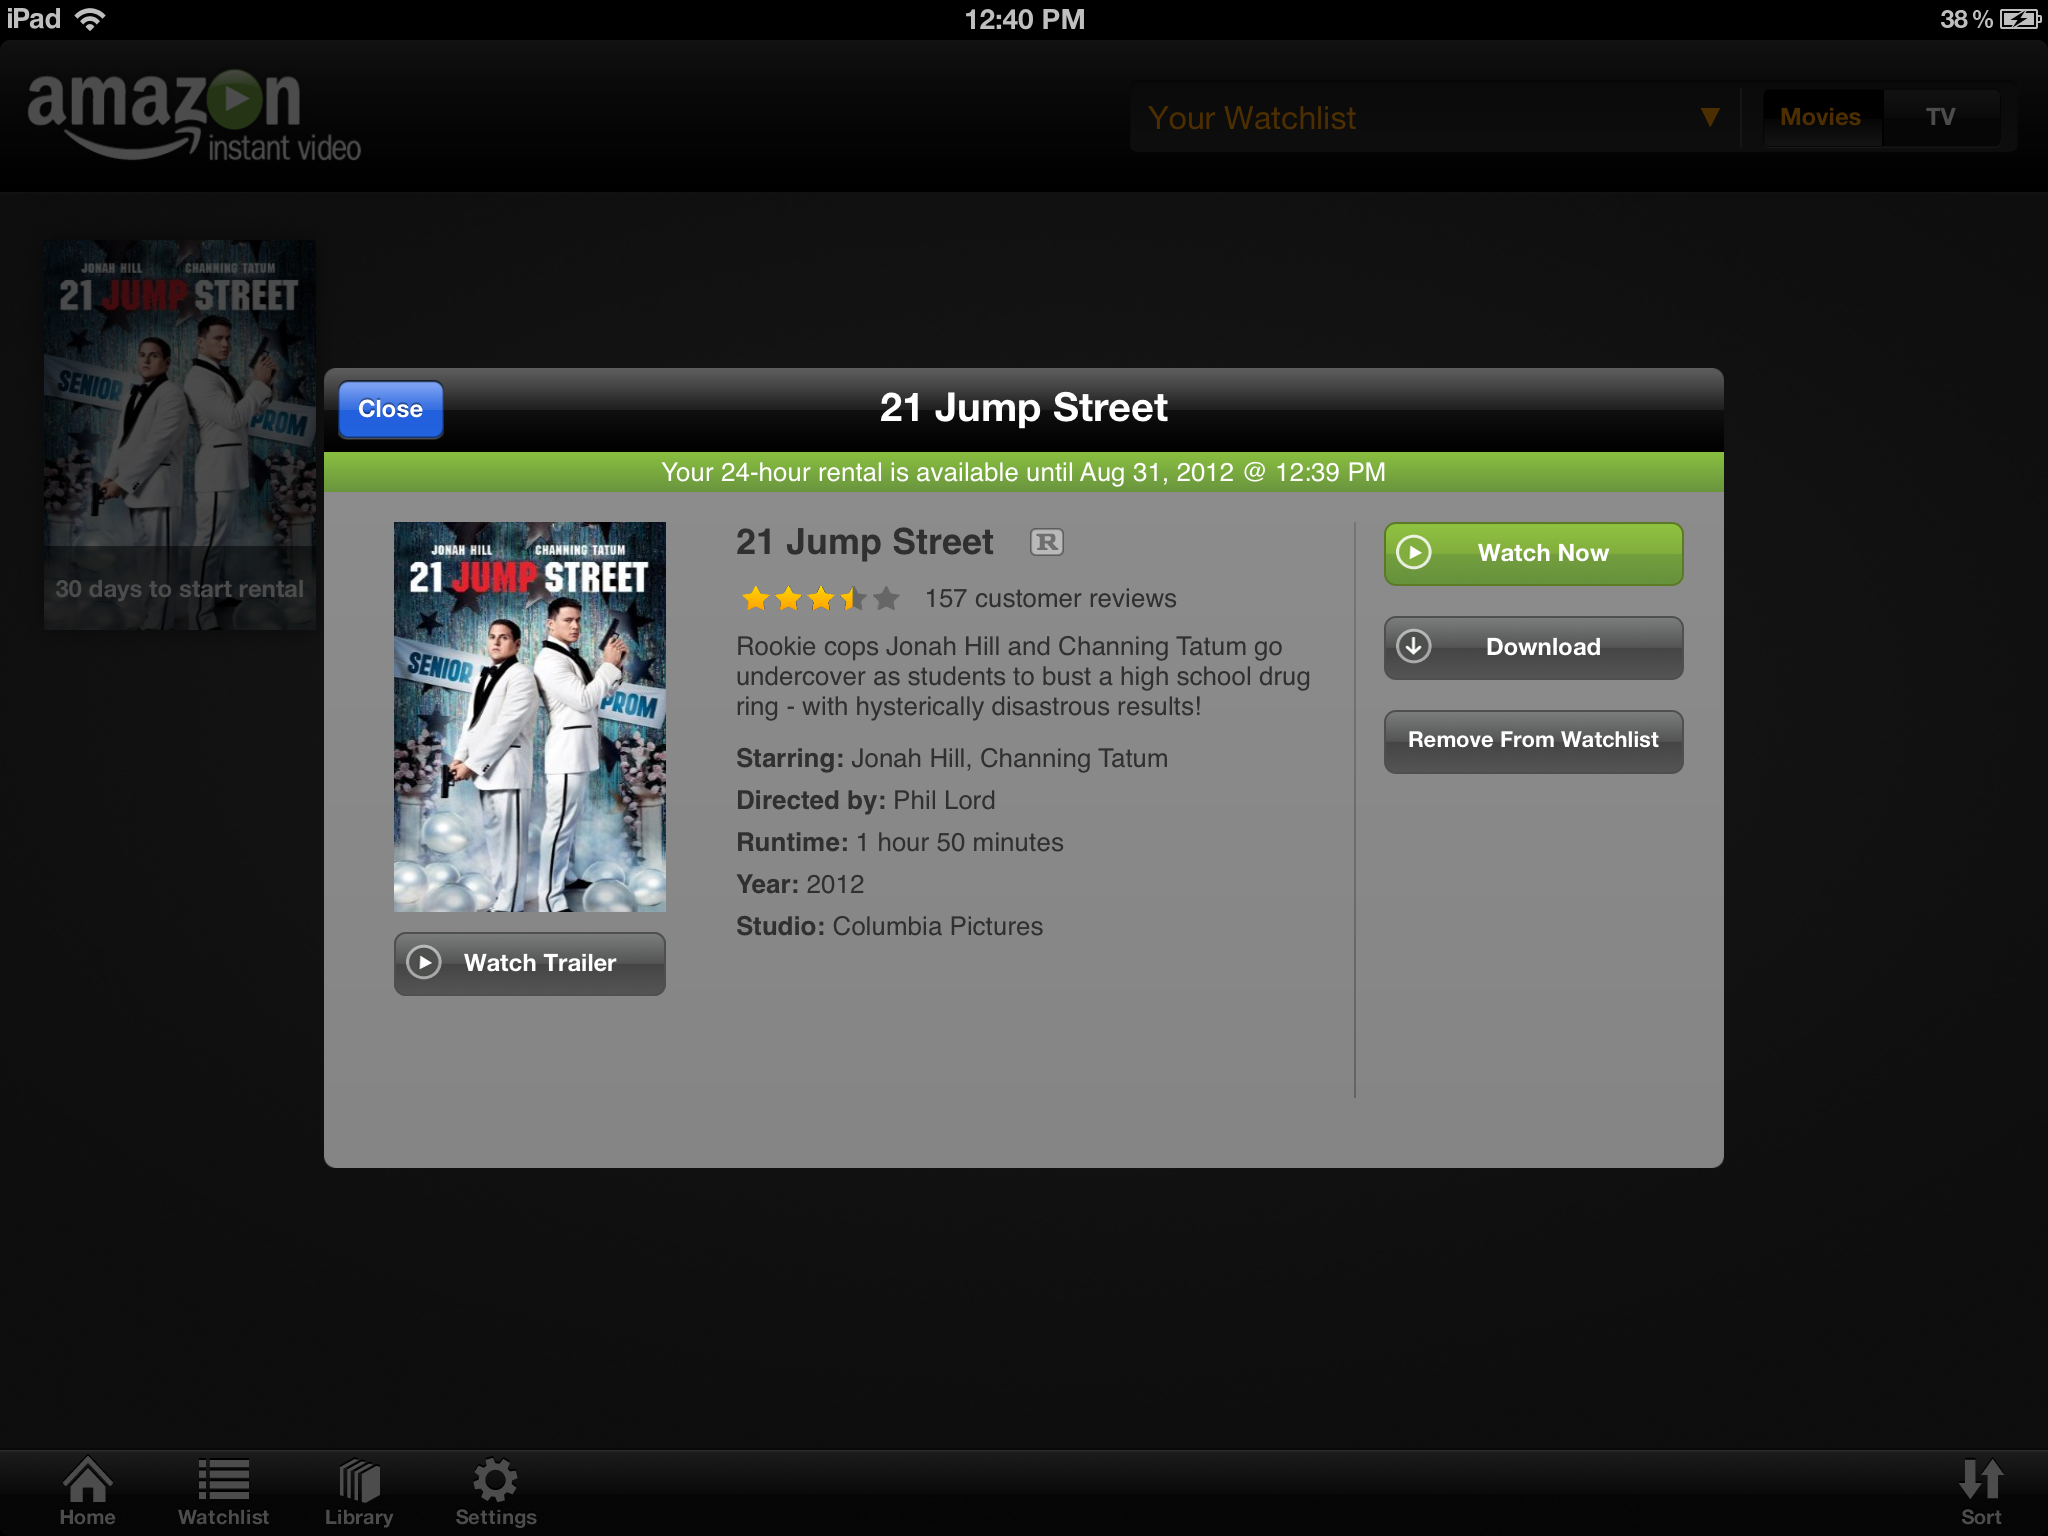 Hands-on: Amazon Instant Video on iPad sorely lacks Airplay